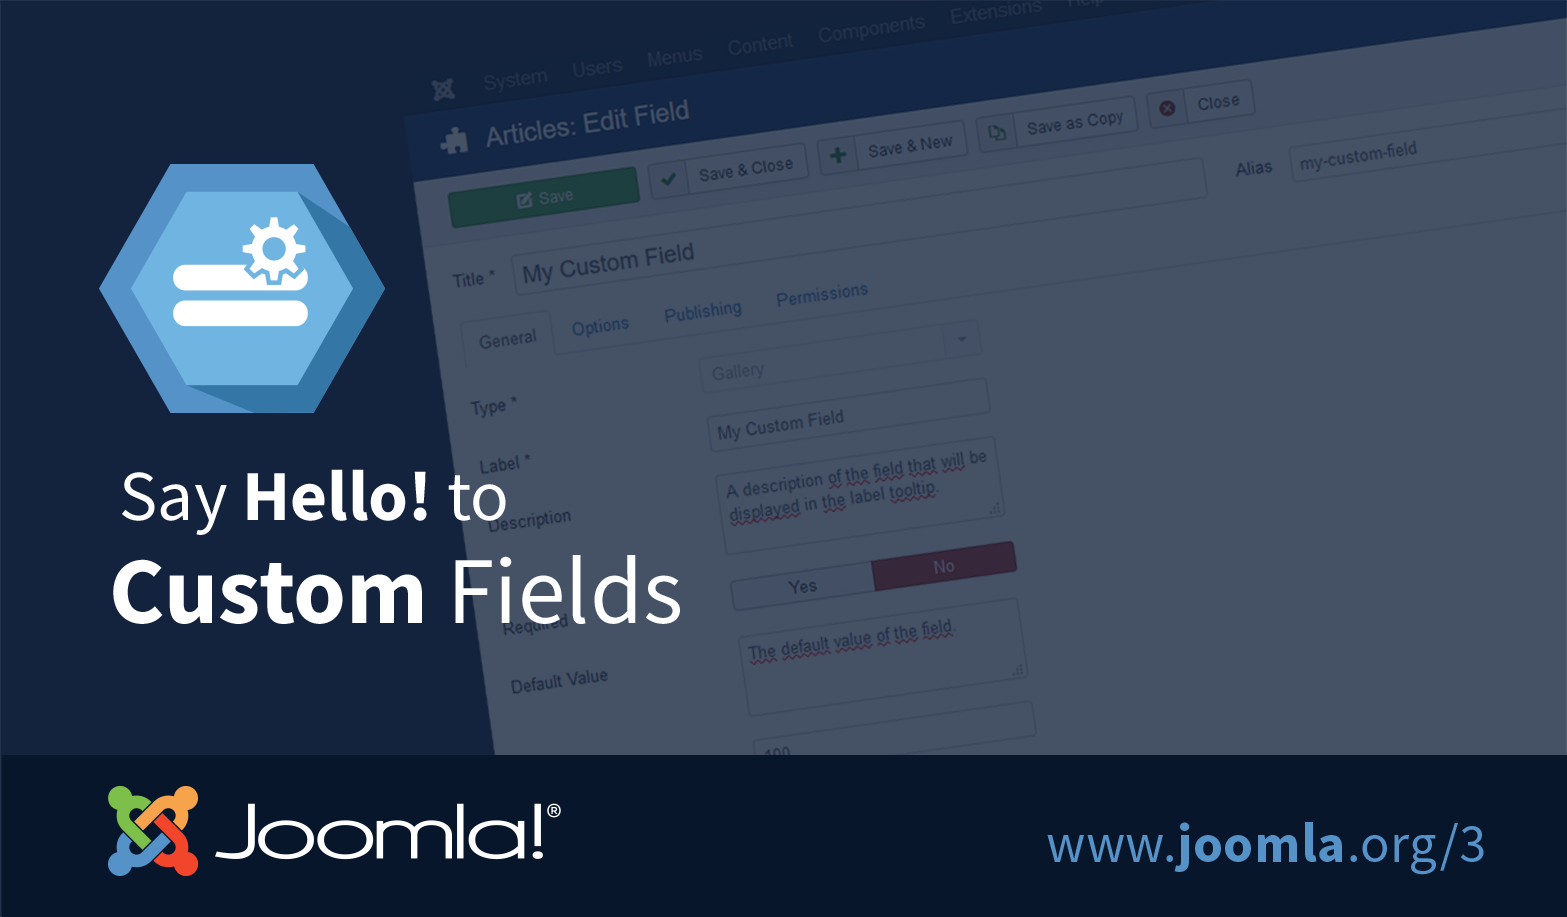 joomla-custom-fields